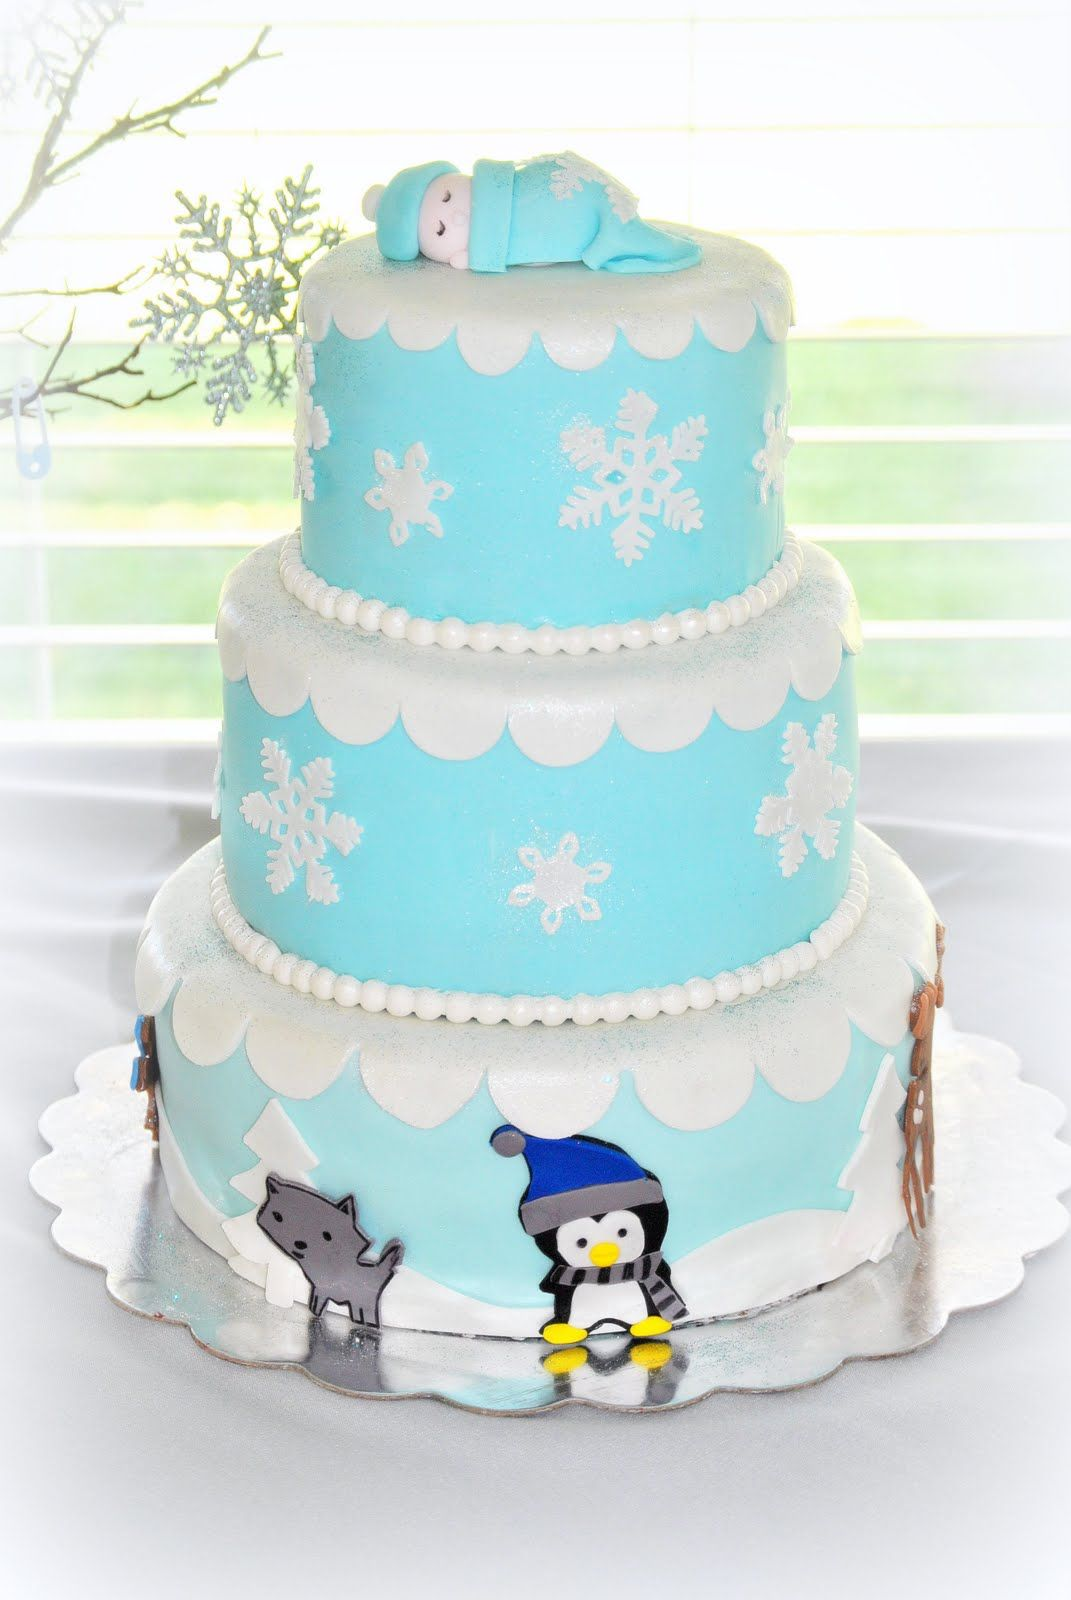 Winter Baby Animal Cake. Winter Wonderland Themed Baby Shower